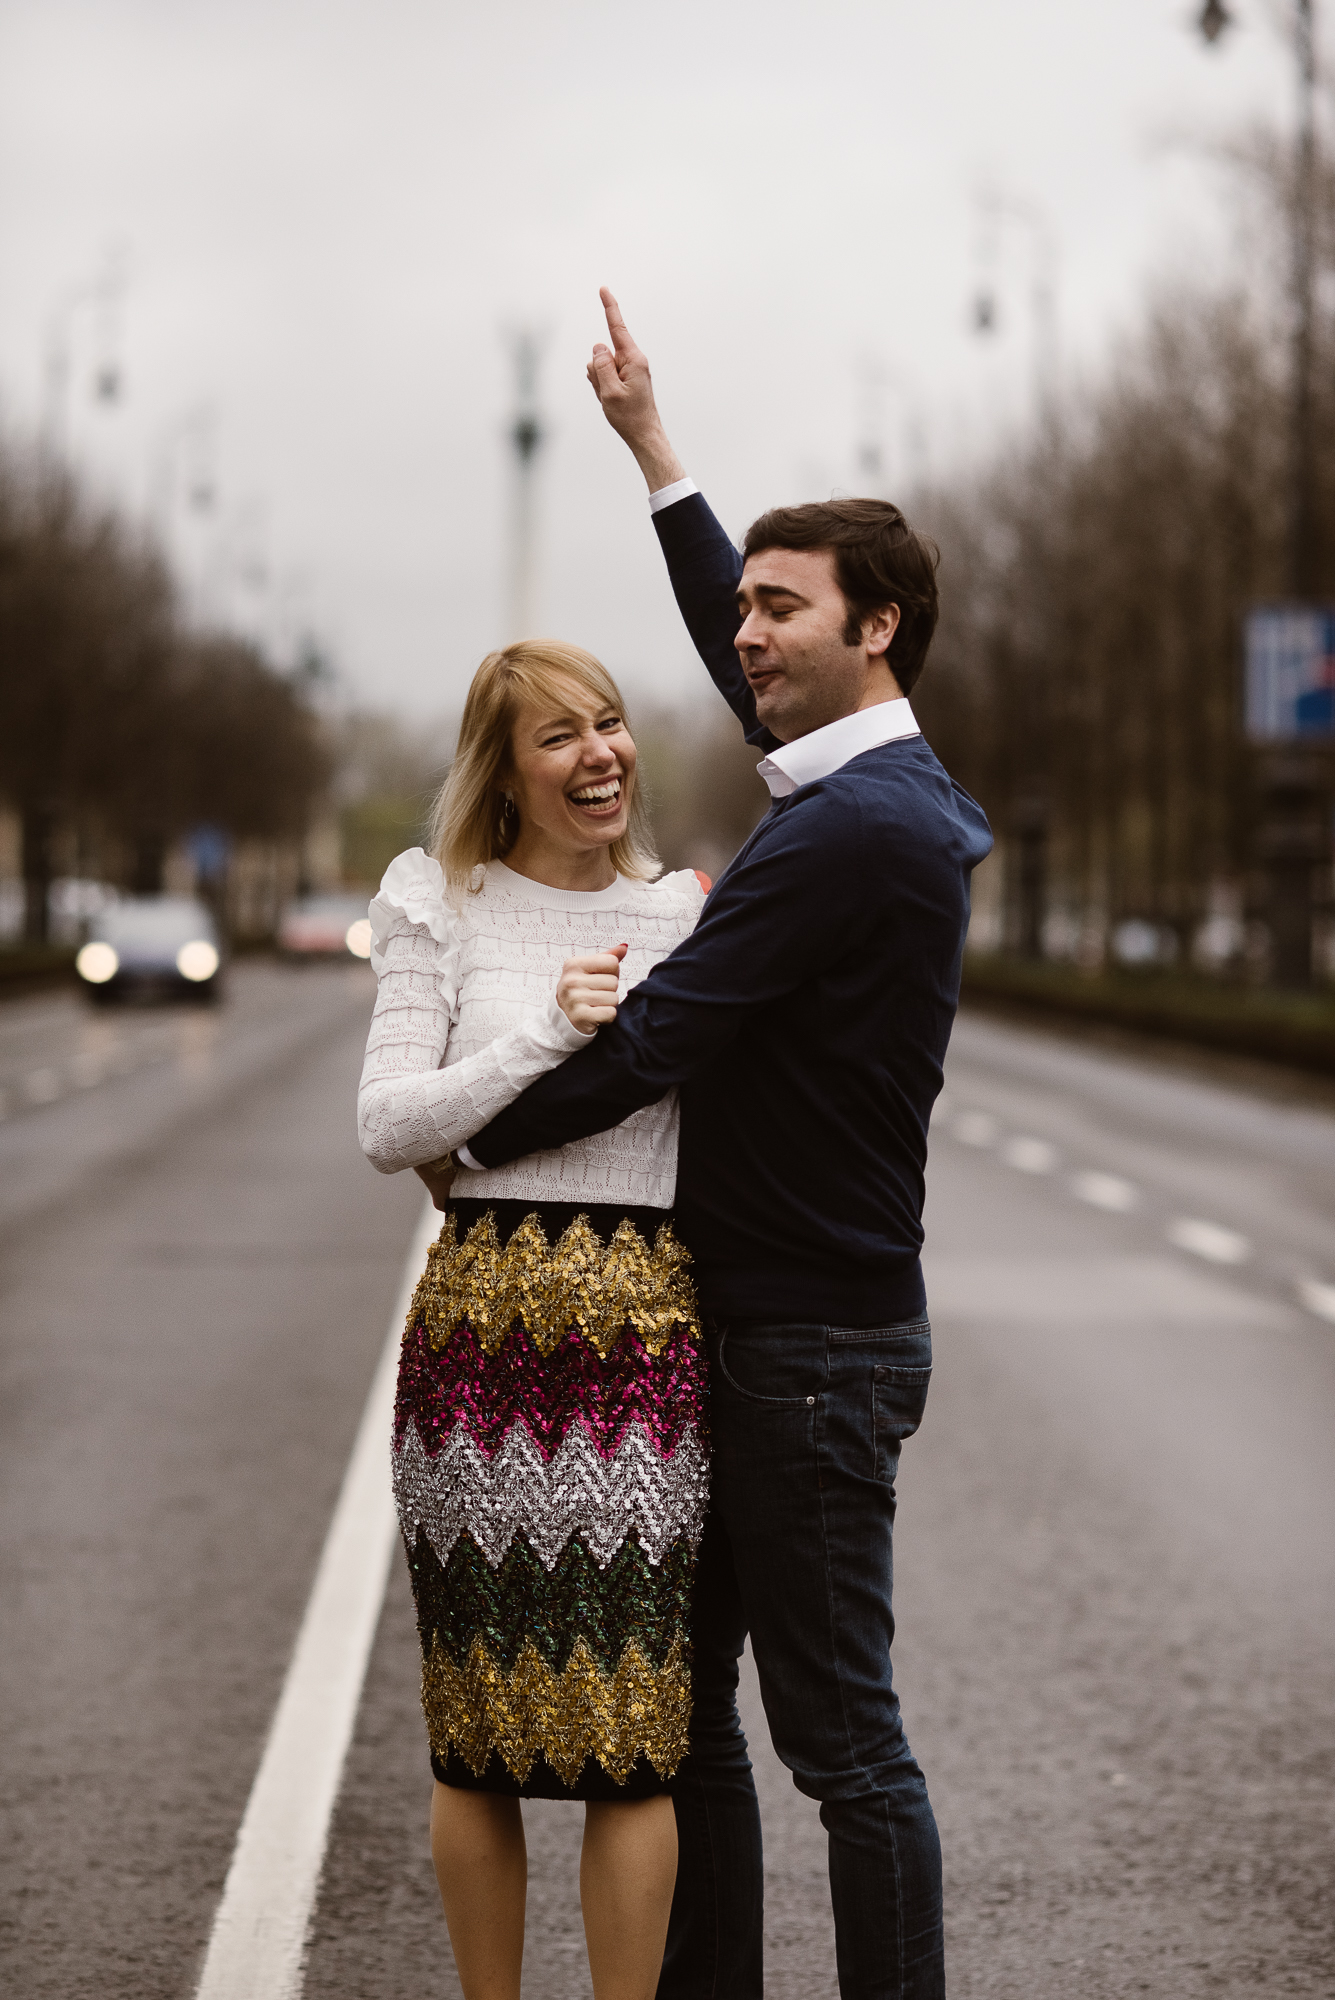 wedding photographer takes engagement photoshoot in the City Center Andrassy ut City Park Hosok tere | The Wedding Fox